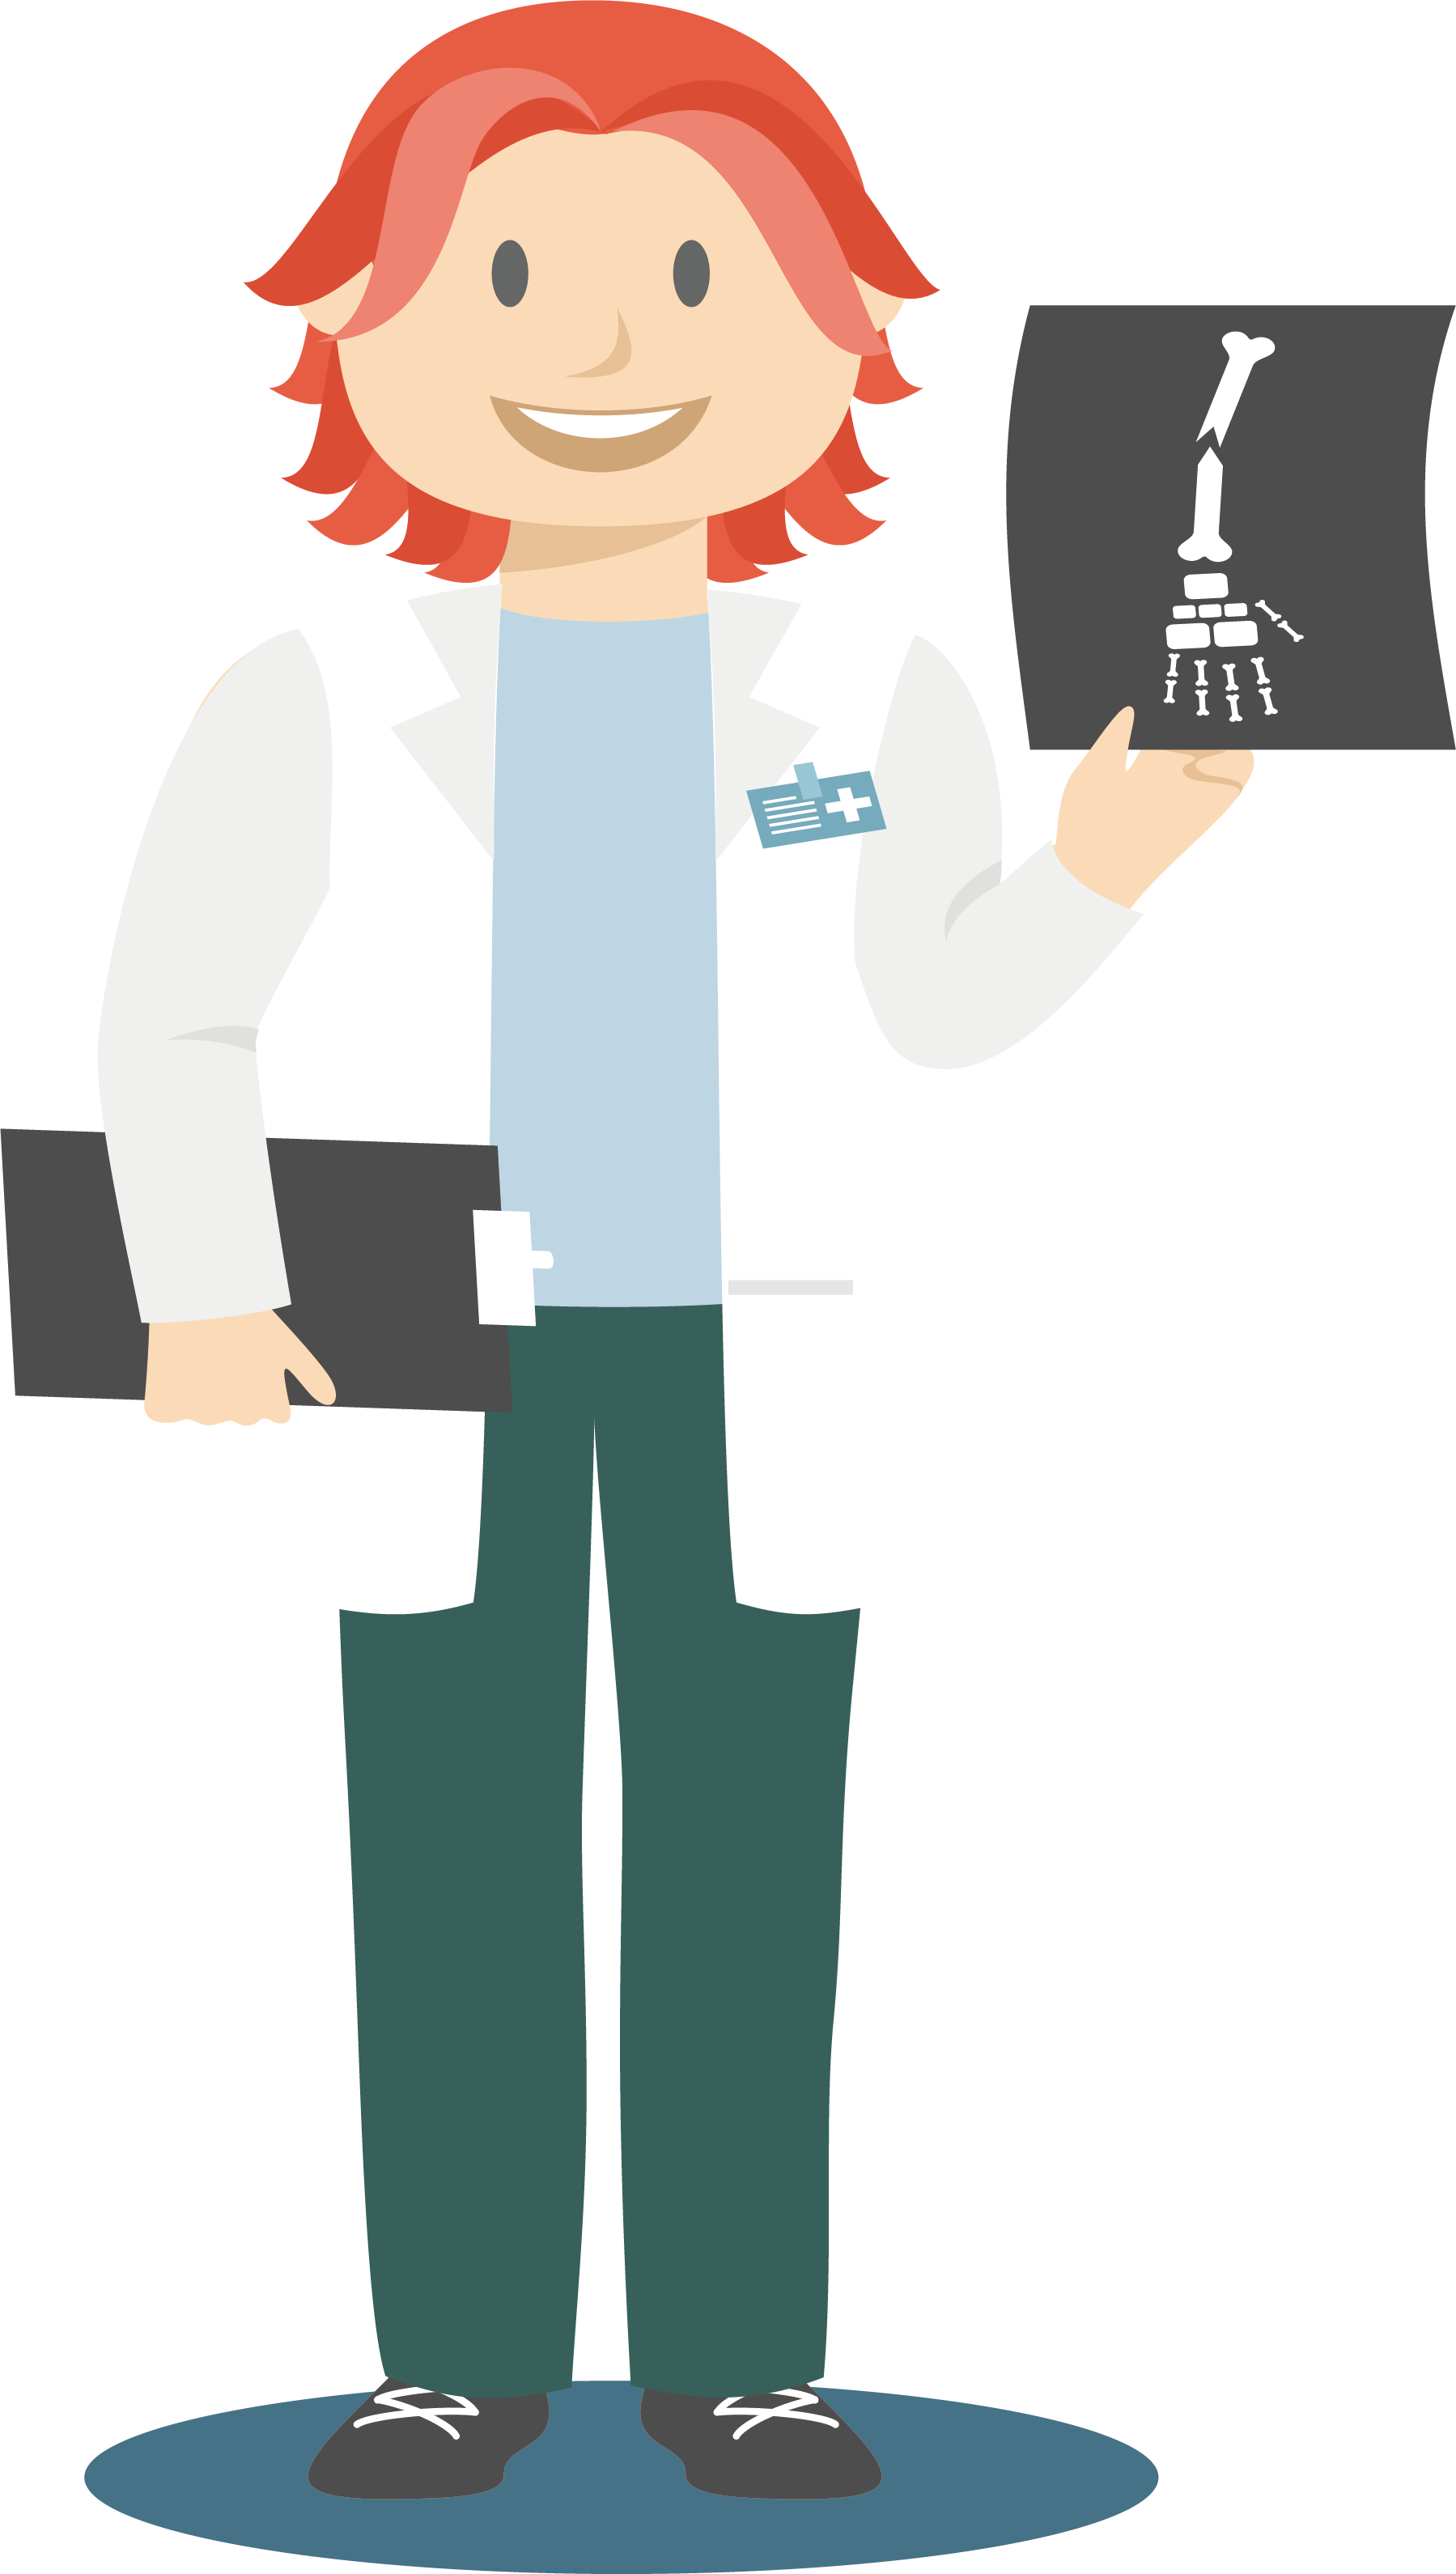 Doctor clipart light. Orthopedic surgery physician clip